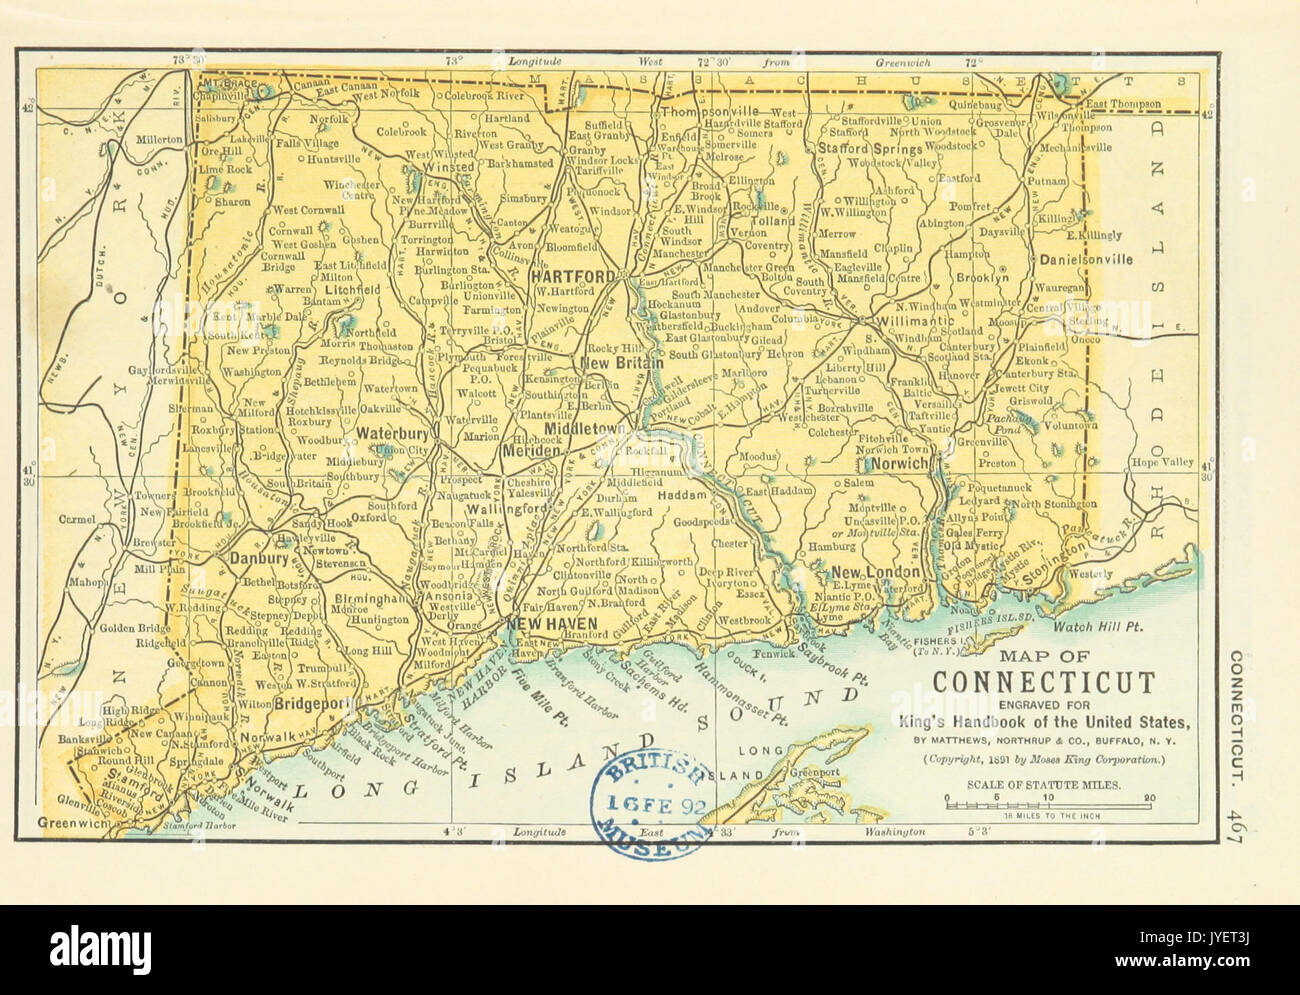 Connecticut On Us Map - Connecticut in us map